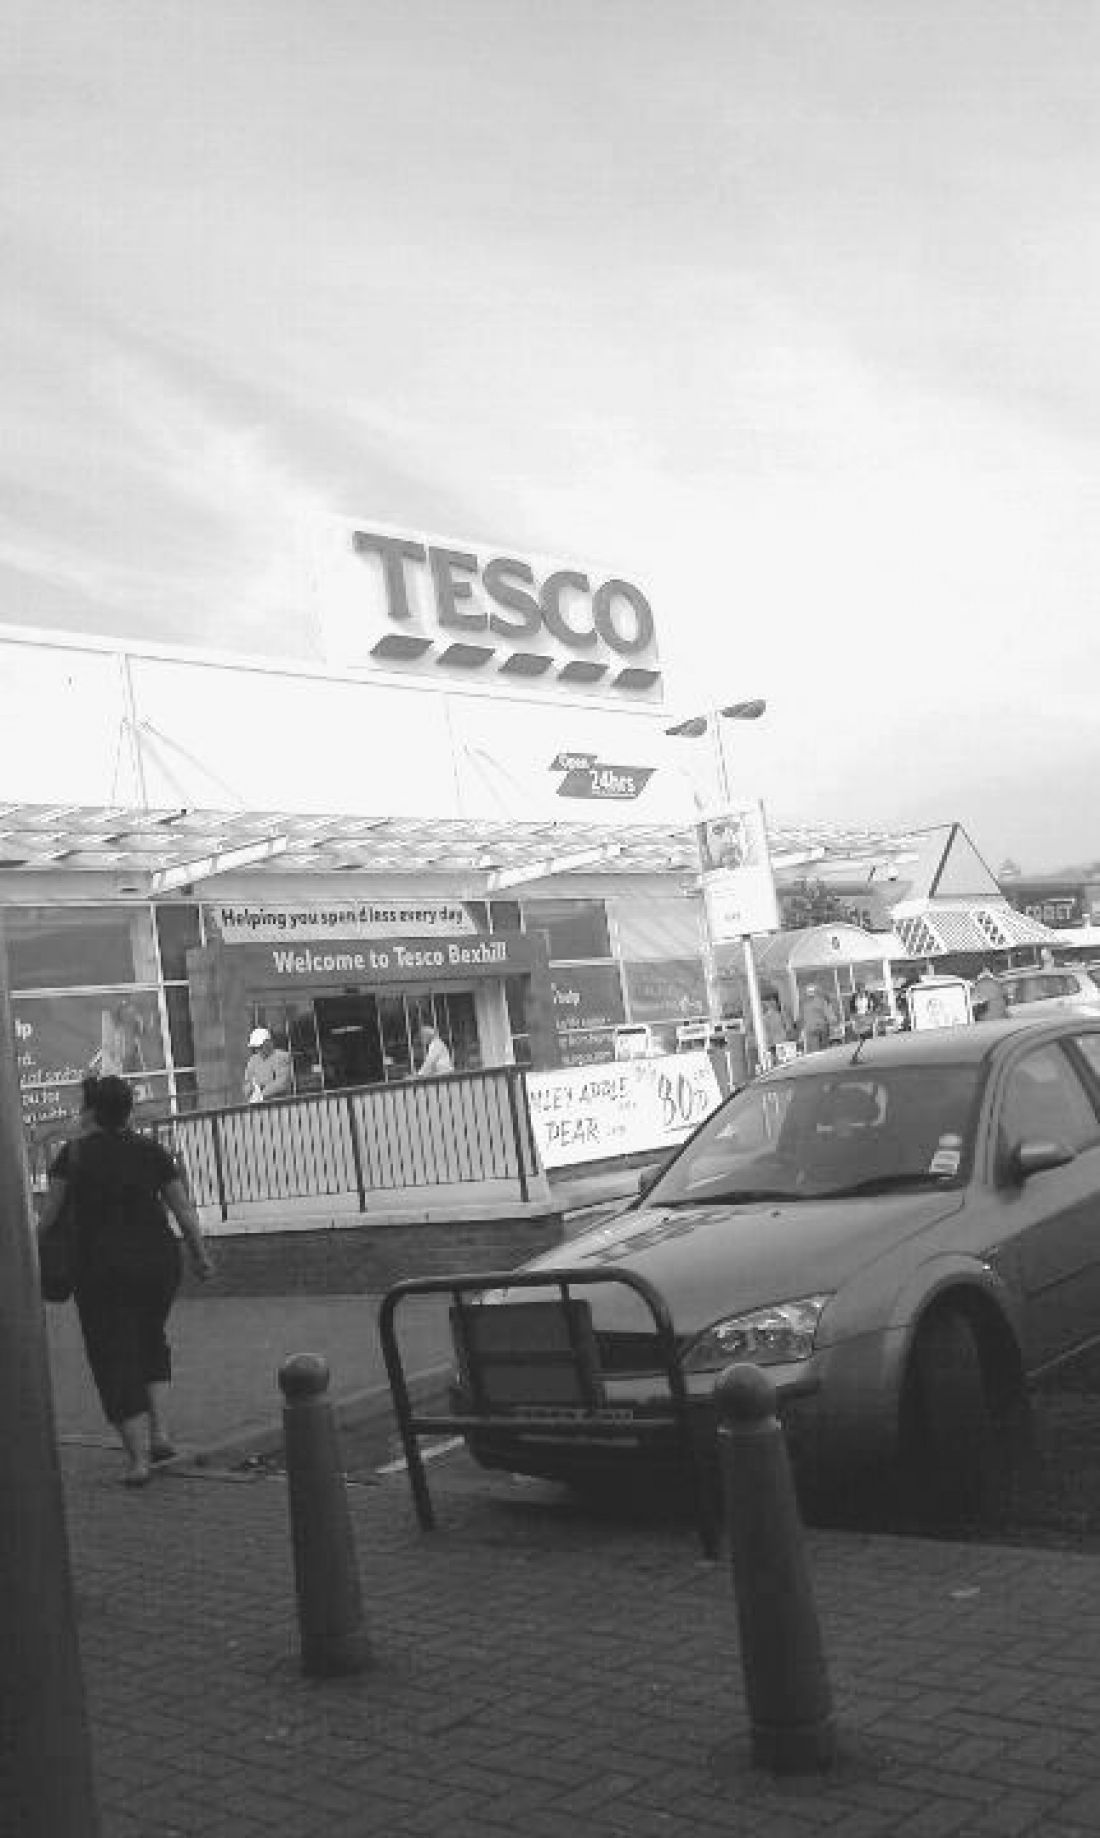 WeatherShield Glass Canopy, Tesco, Bexhill, (Monochrome)